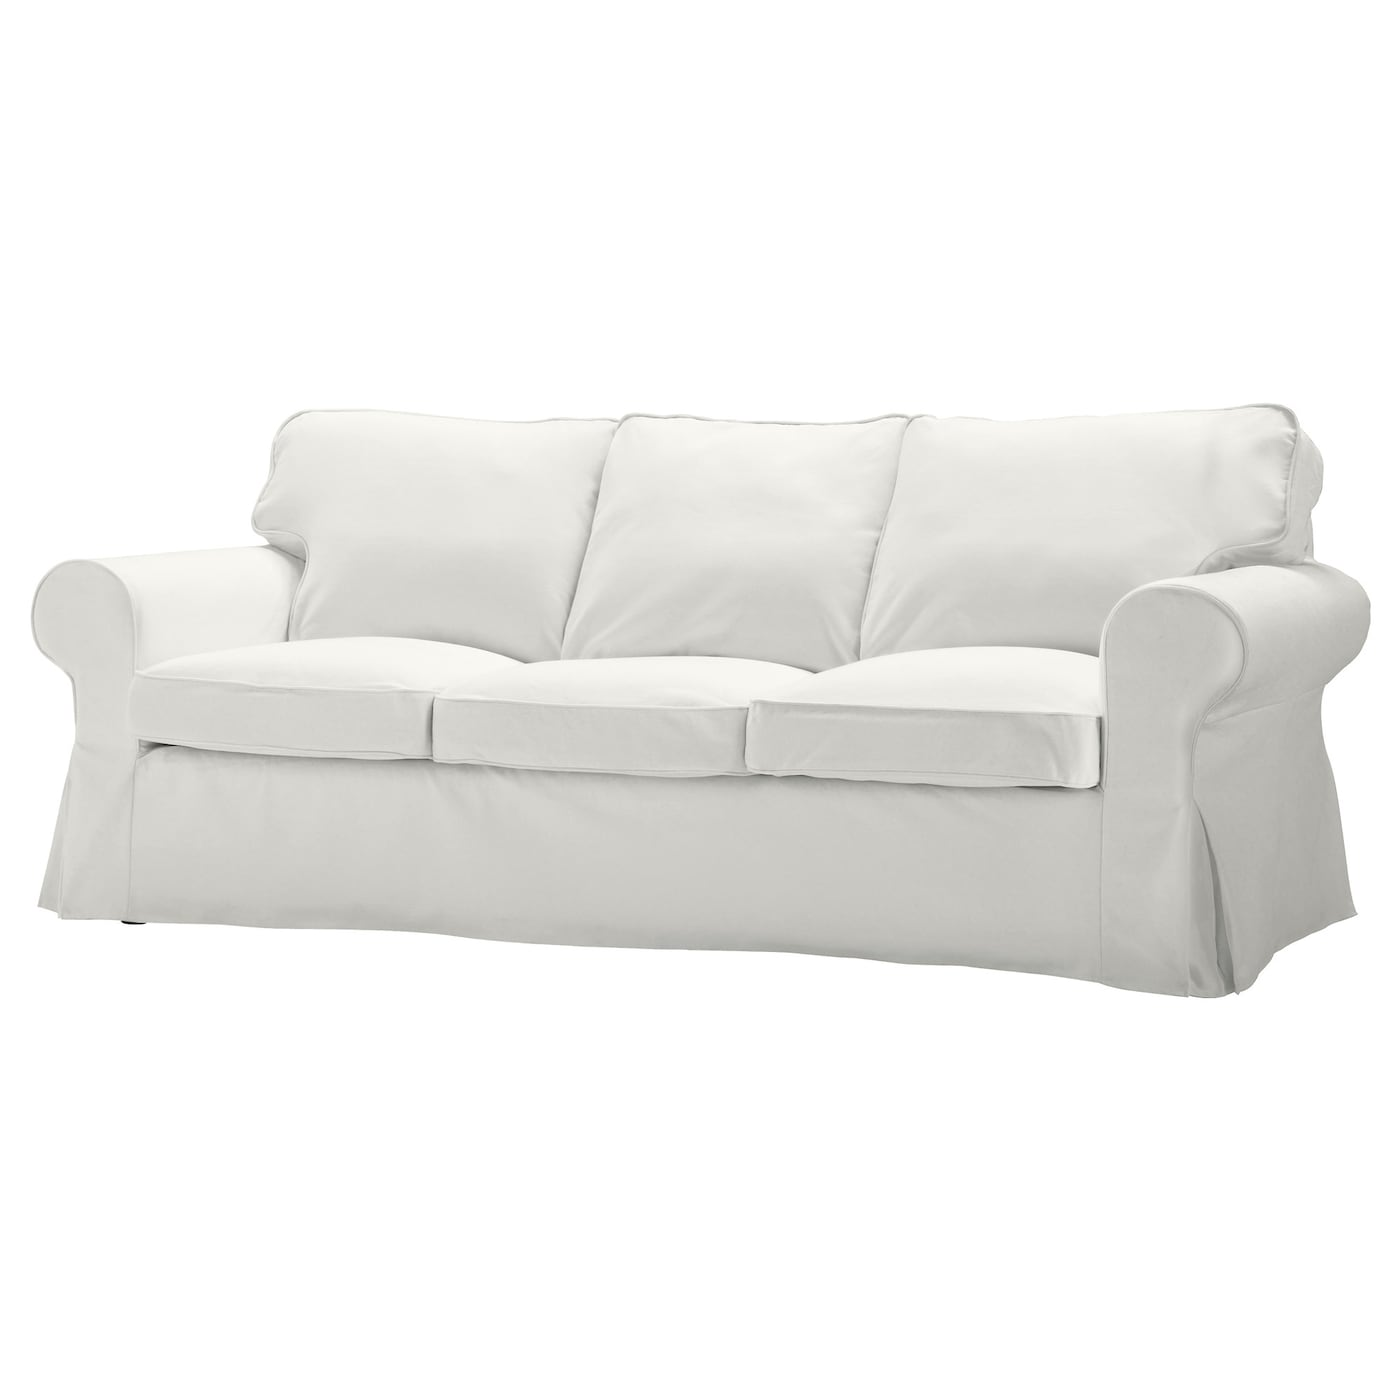 ektorp three seat sofa blekinge white ikea. Black Bedroom Furniture Sets. Home Design Ideas